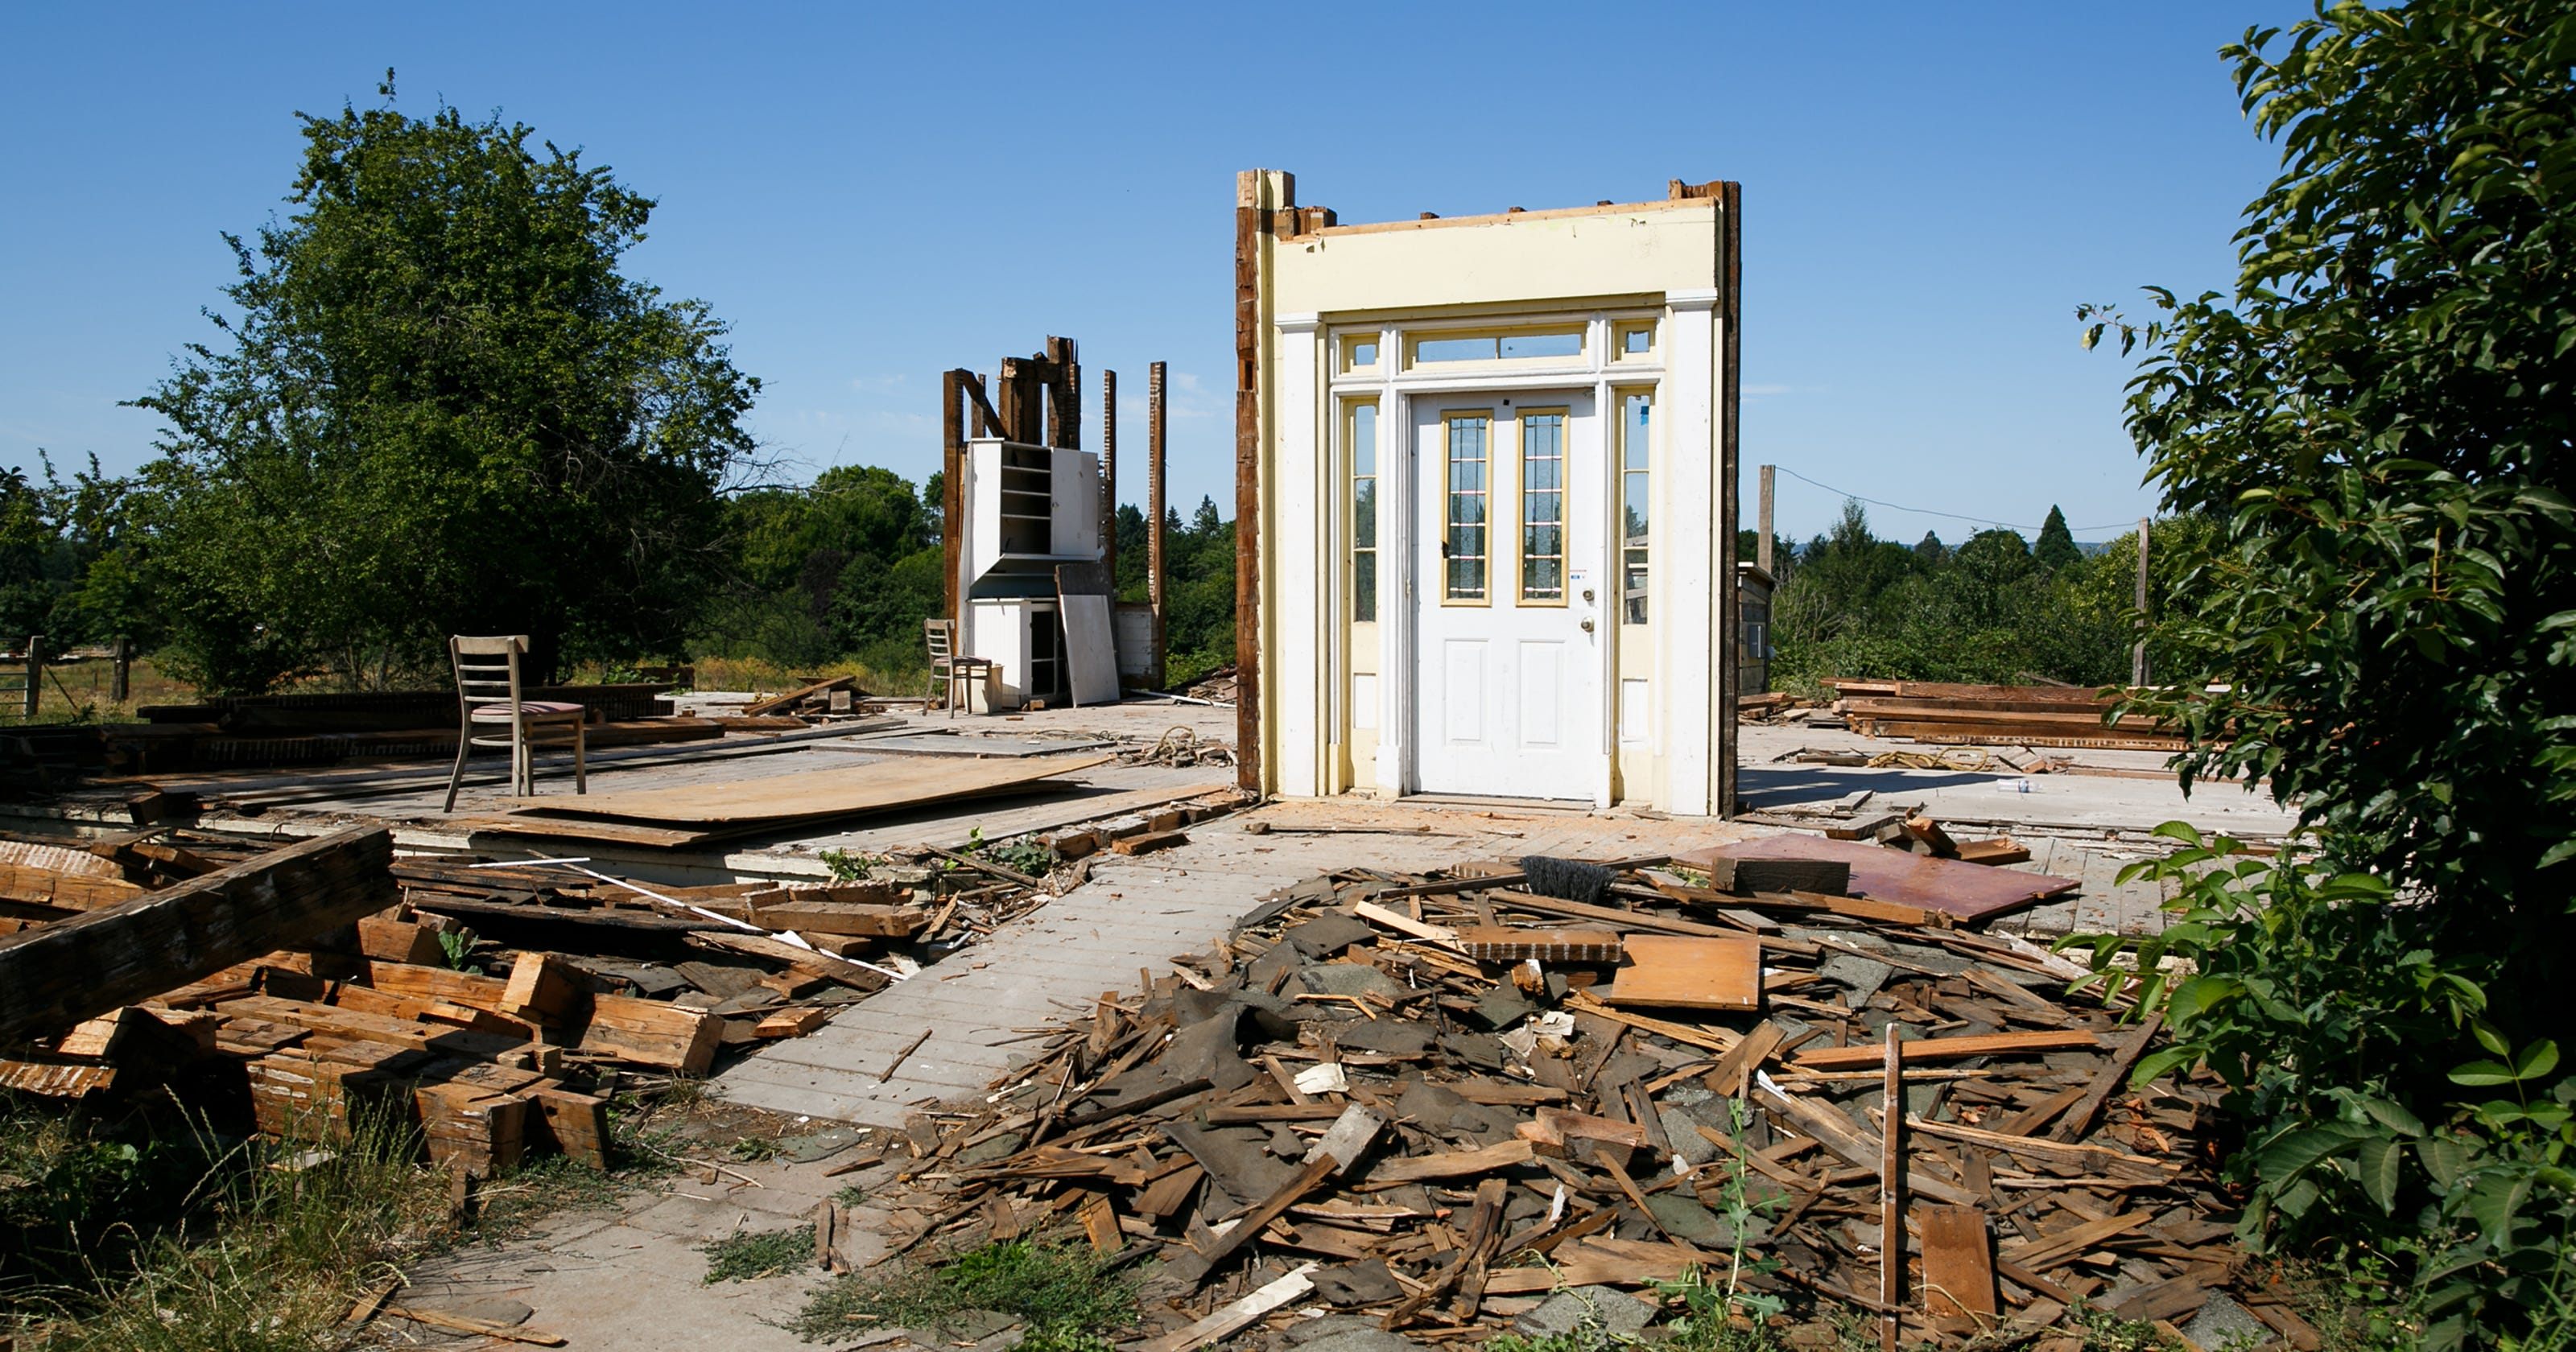 Historic Keizer farmhouse, at least 143 years old, is torn down